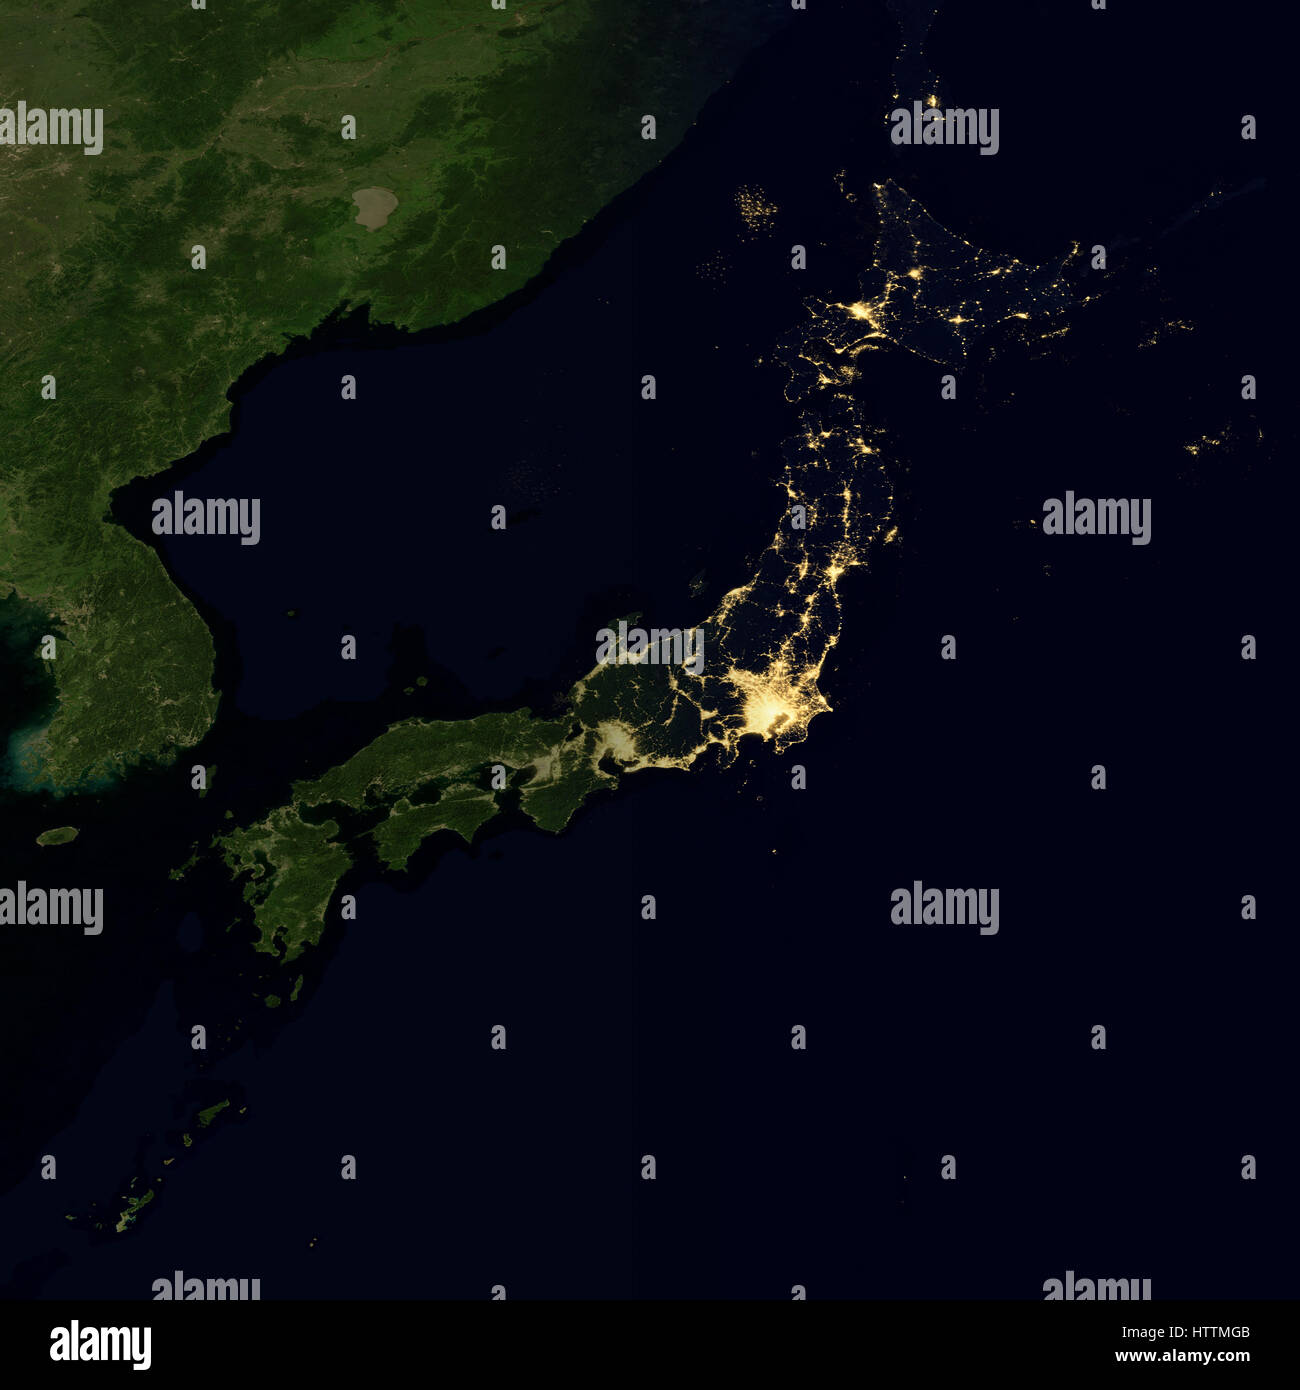 City lights on world map japan stock photo royalty free image city lights on world map japan gumiabroncs Images